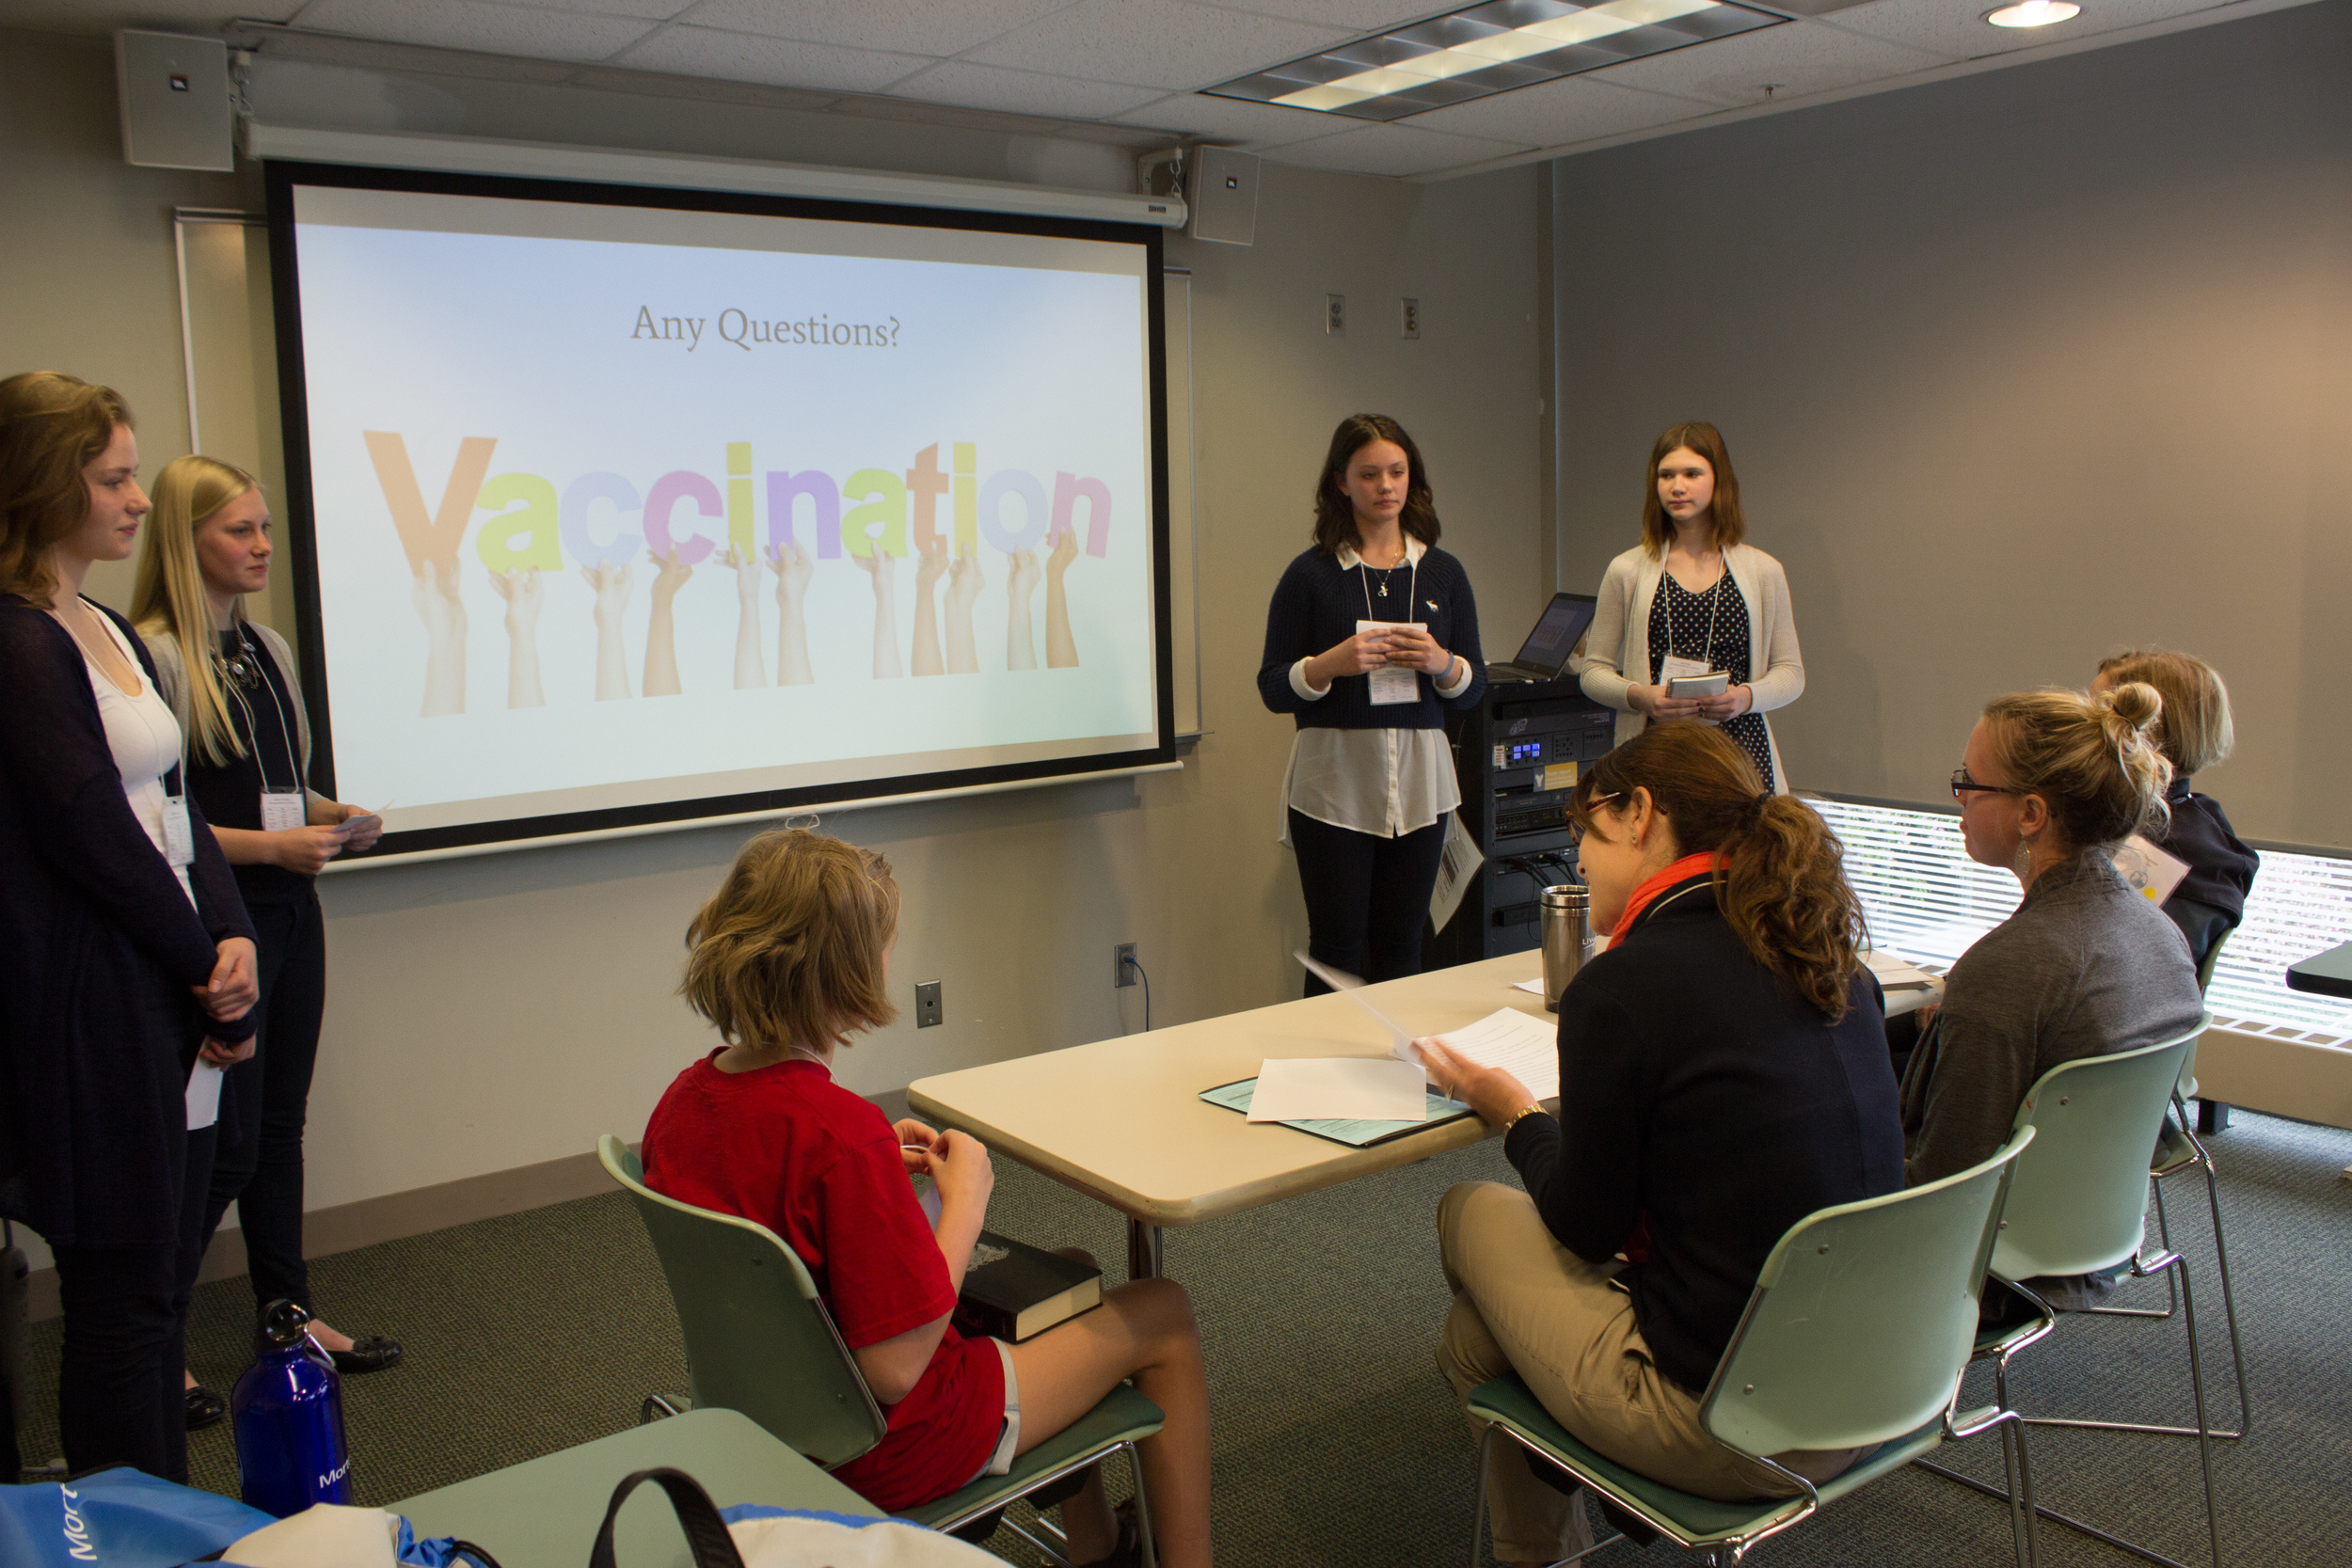 vaccination presentation with judges table.jpg